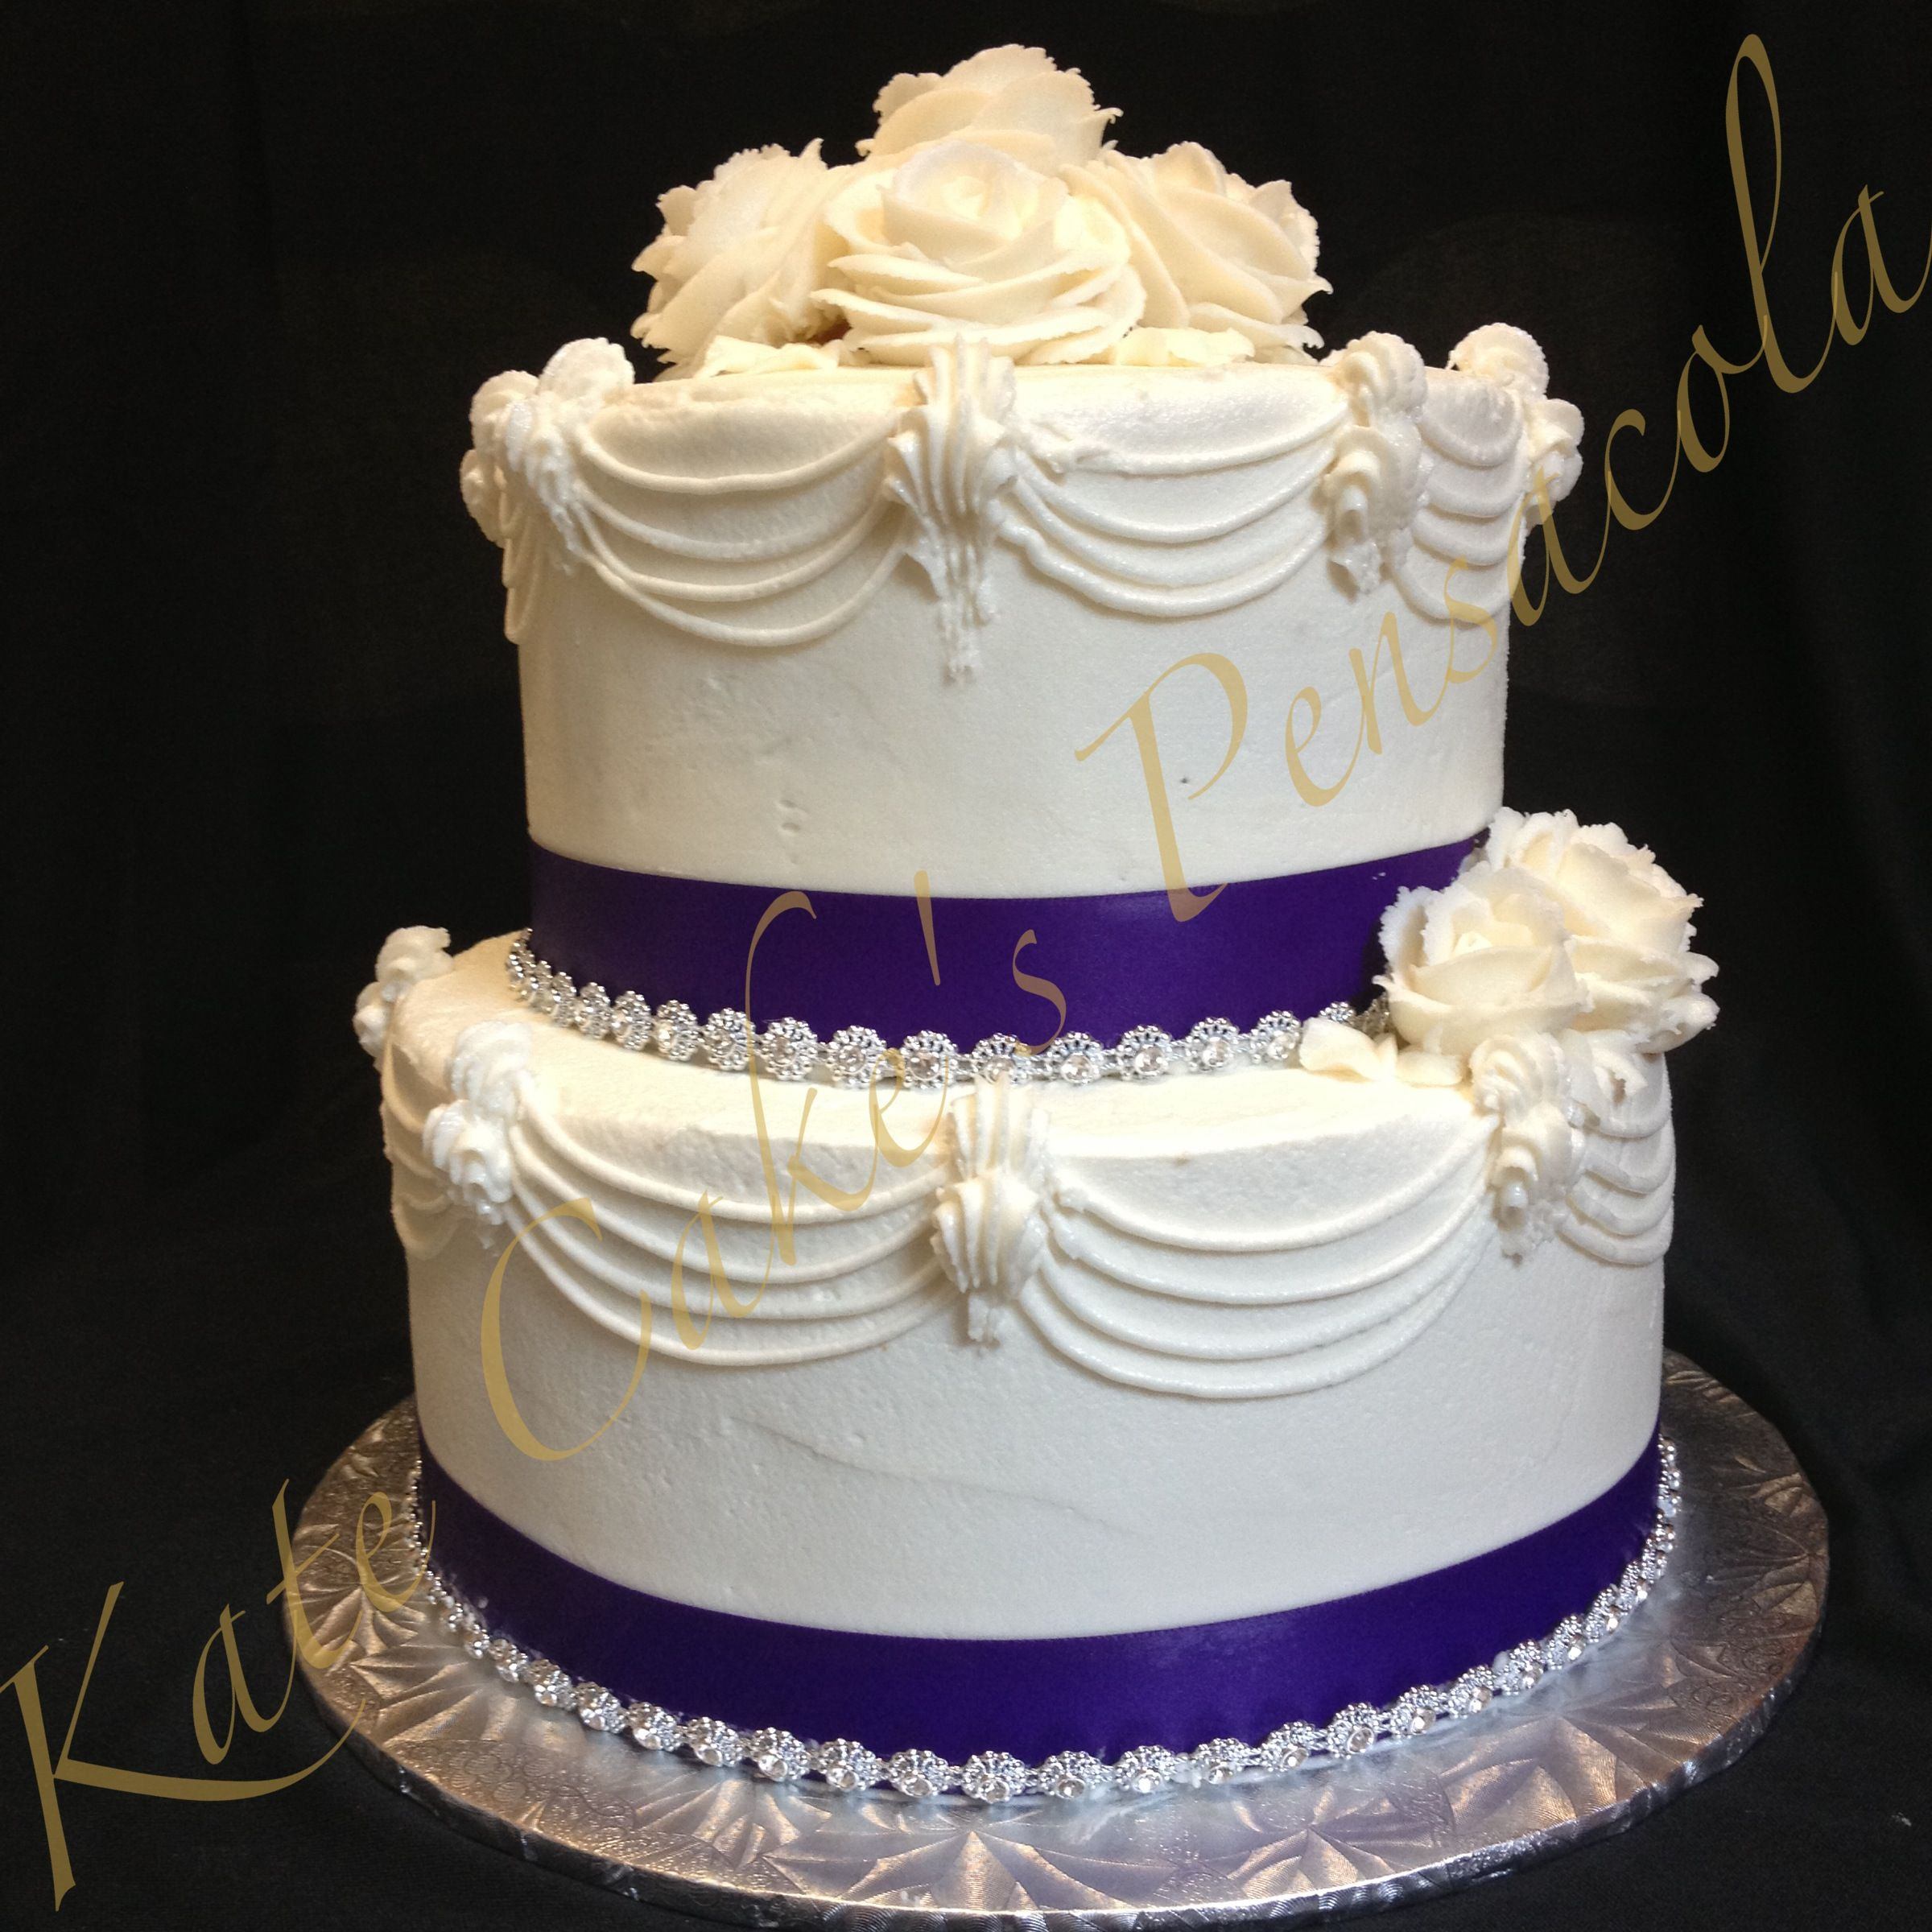 Two Tiered Birthday Cake 75th Birthday Cake With Bling Kates Cakes